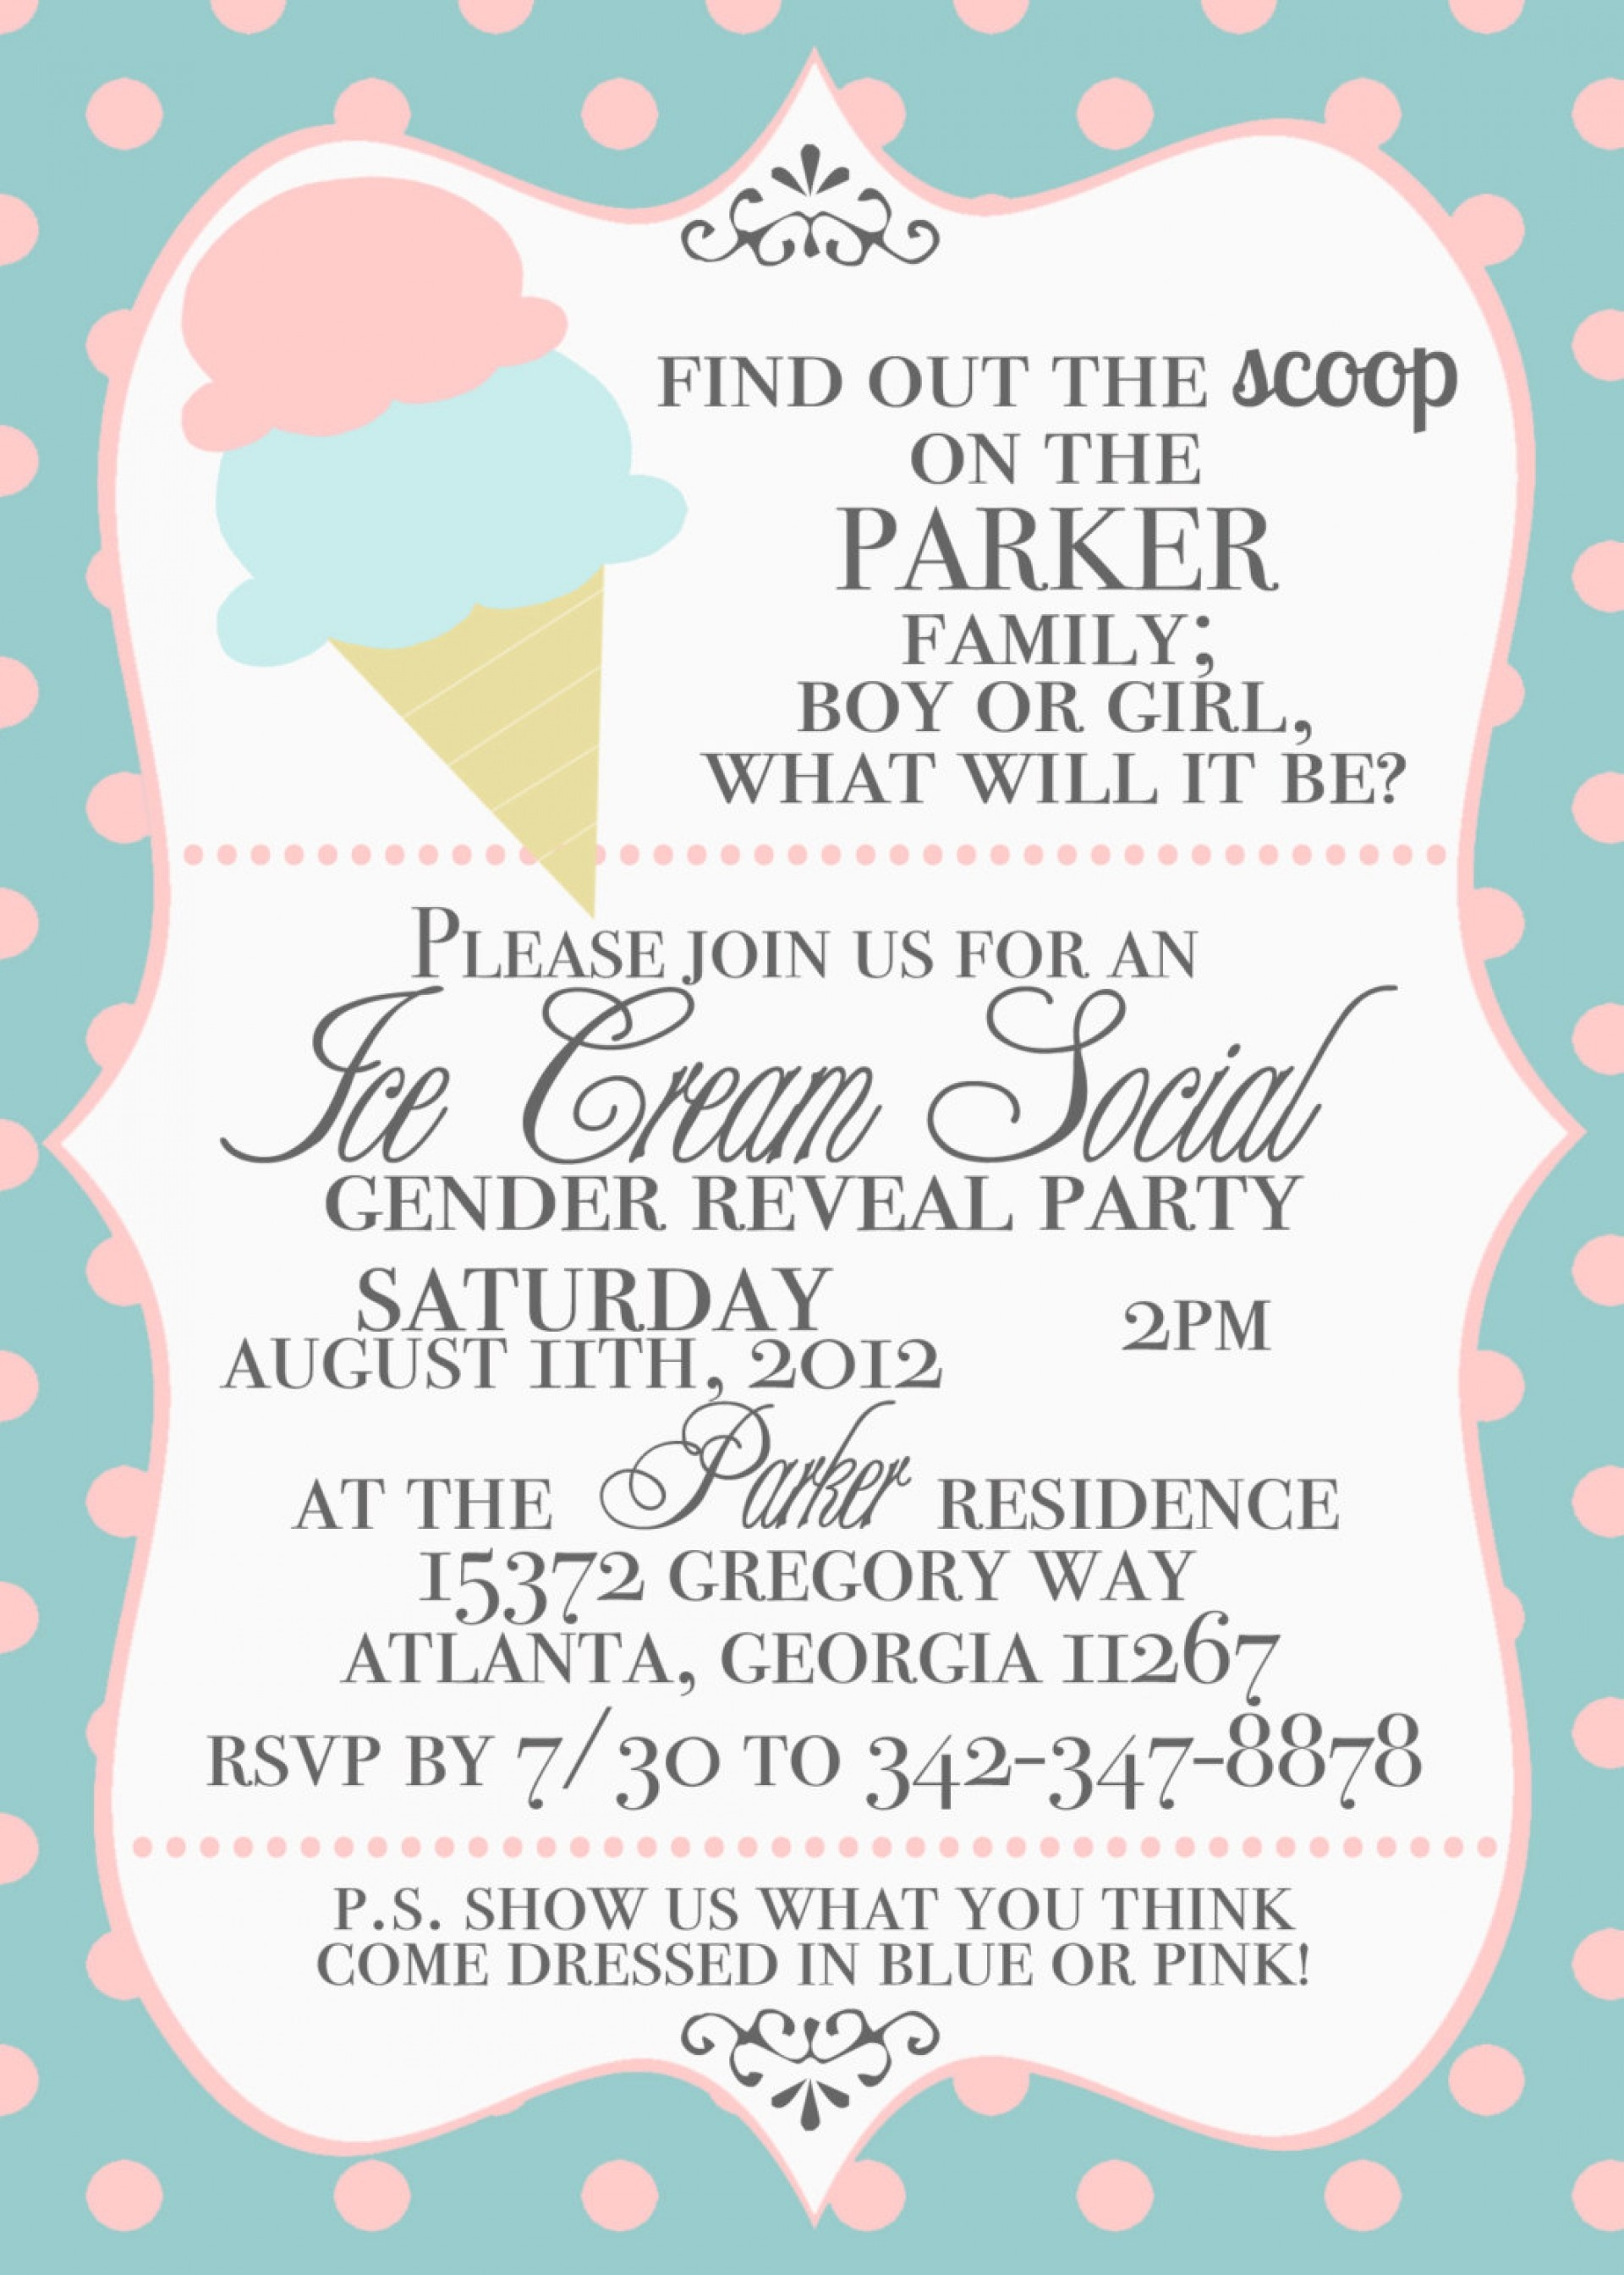 019 Template Ideas Gender Reveal Partyion Example Of Printableions - Free Printable Gender Reveal Templates